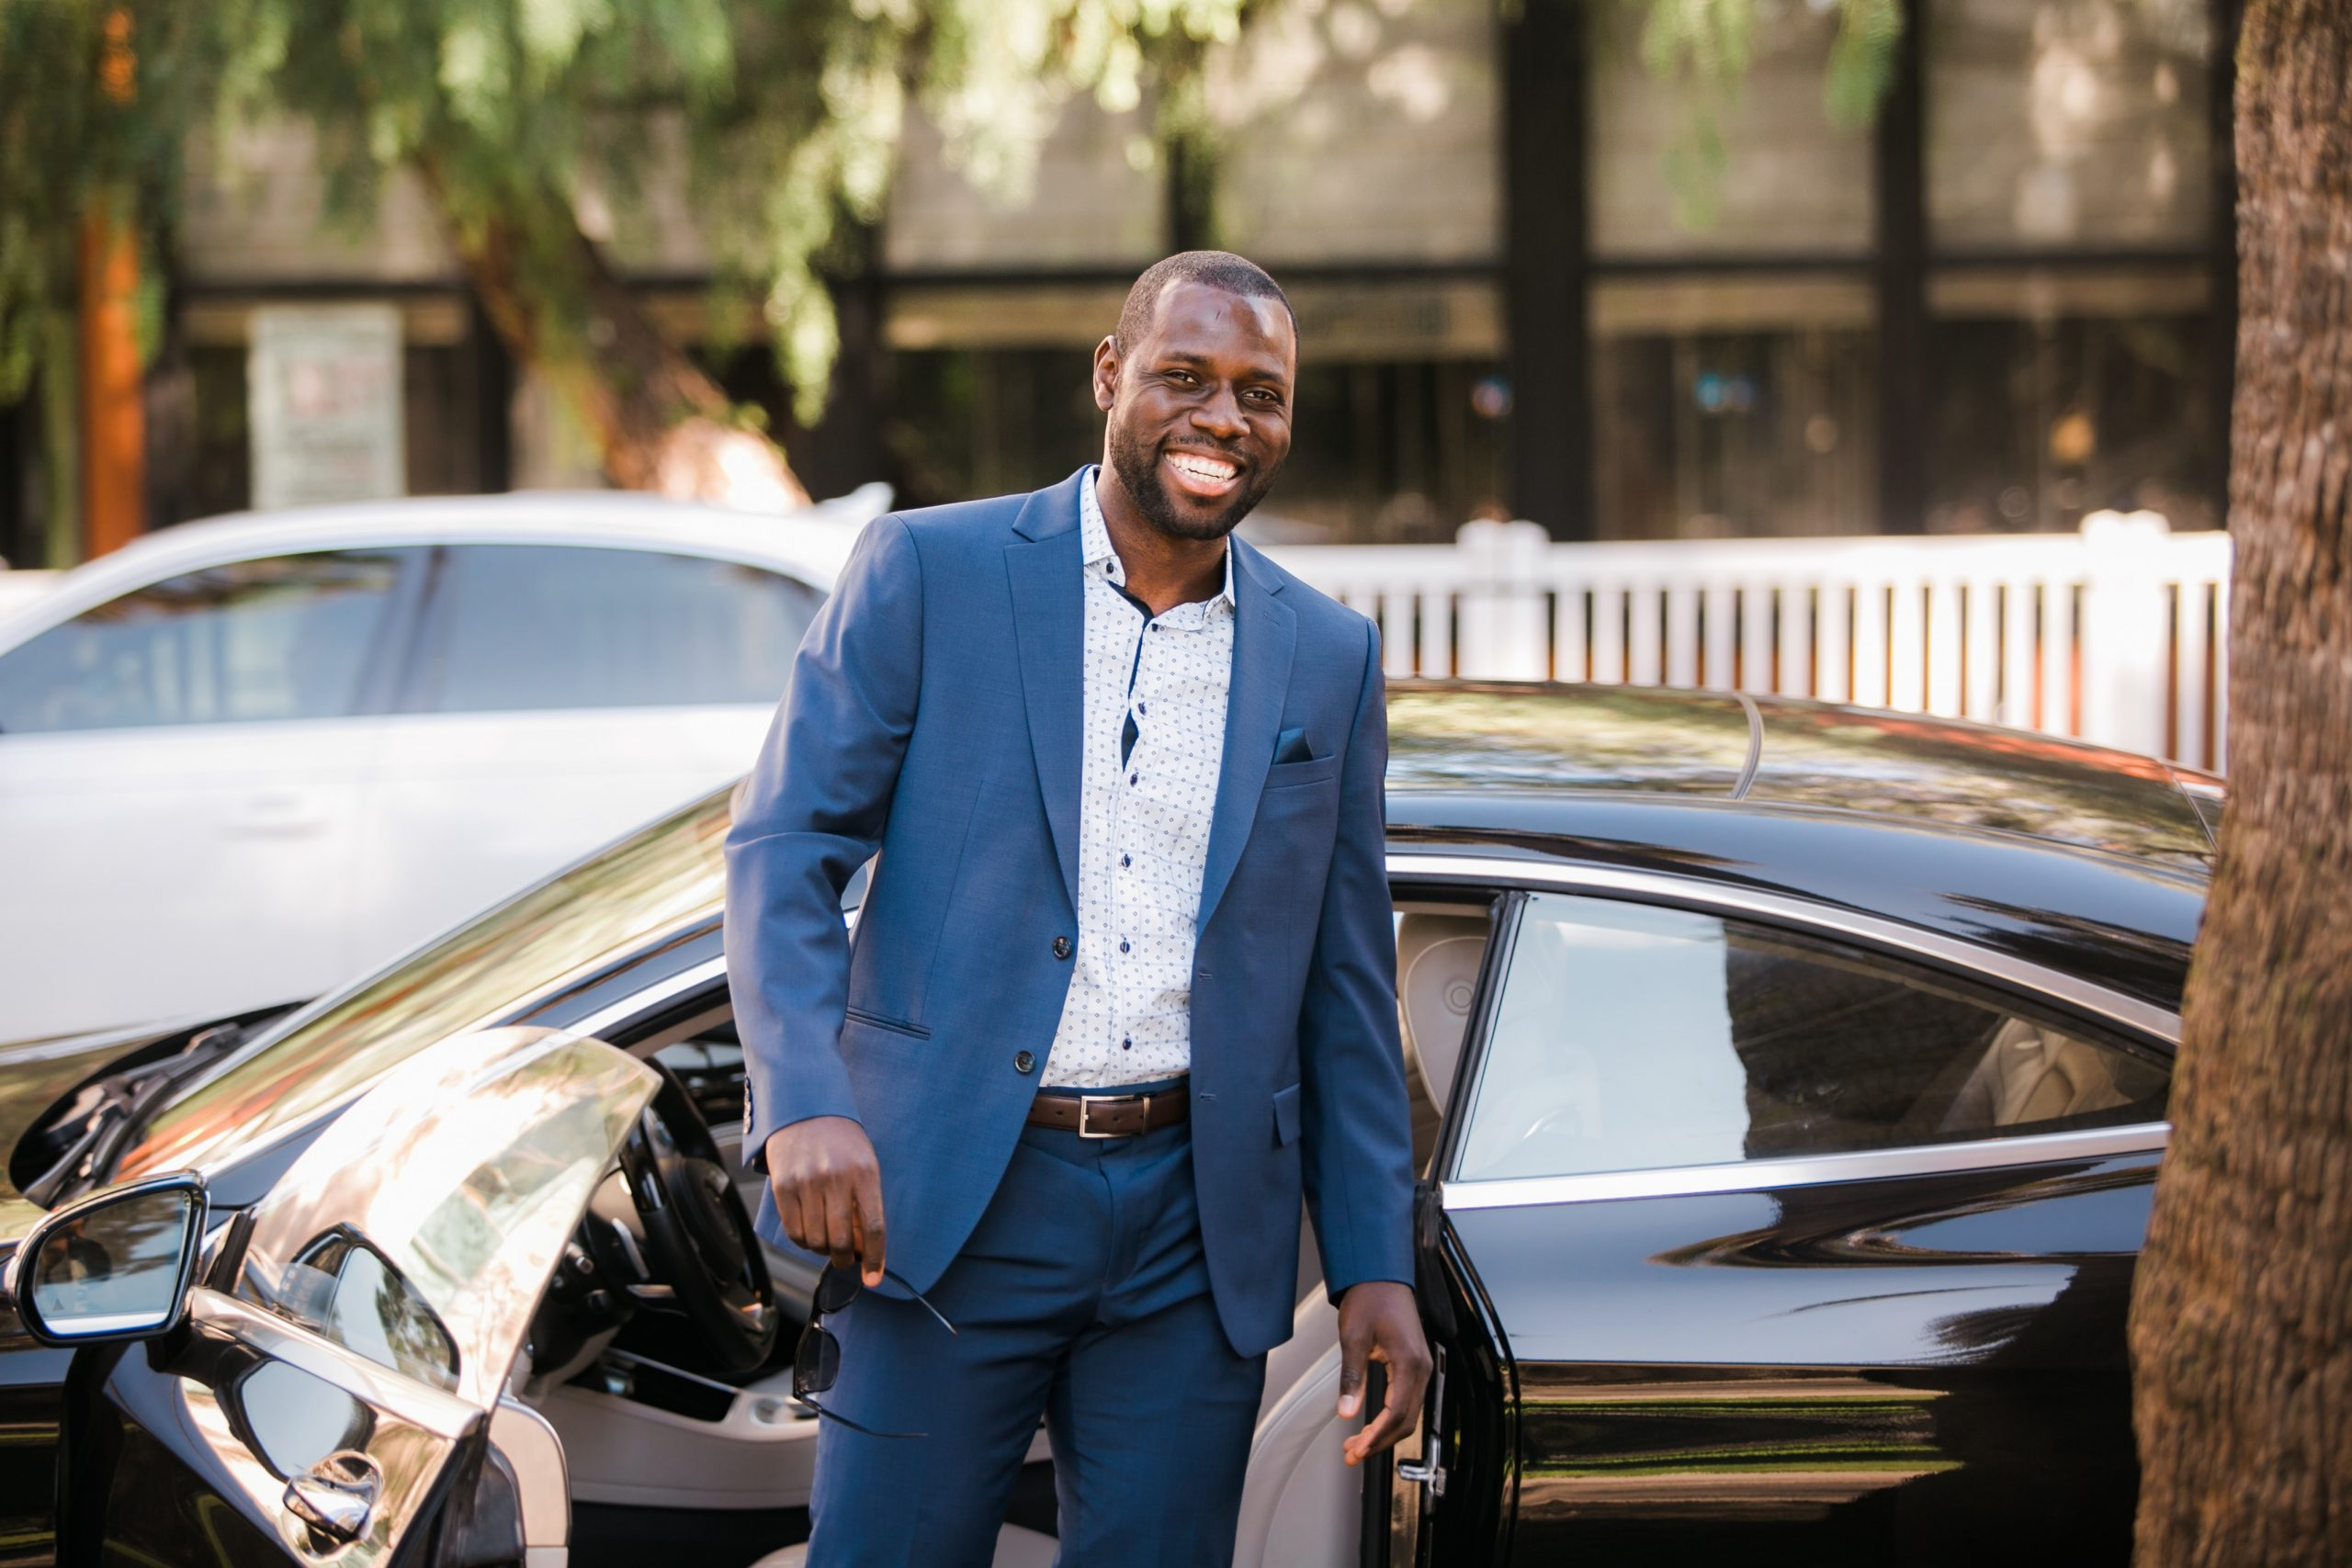 Fortune Vieyra wearing a blue business suit and smiling in front of a Mercedes